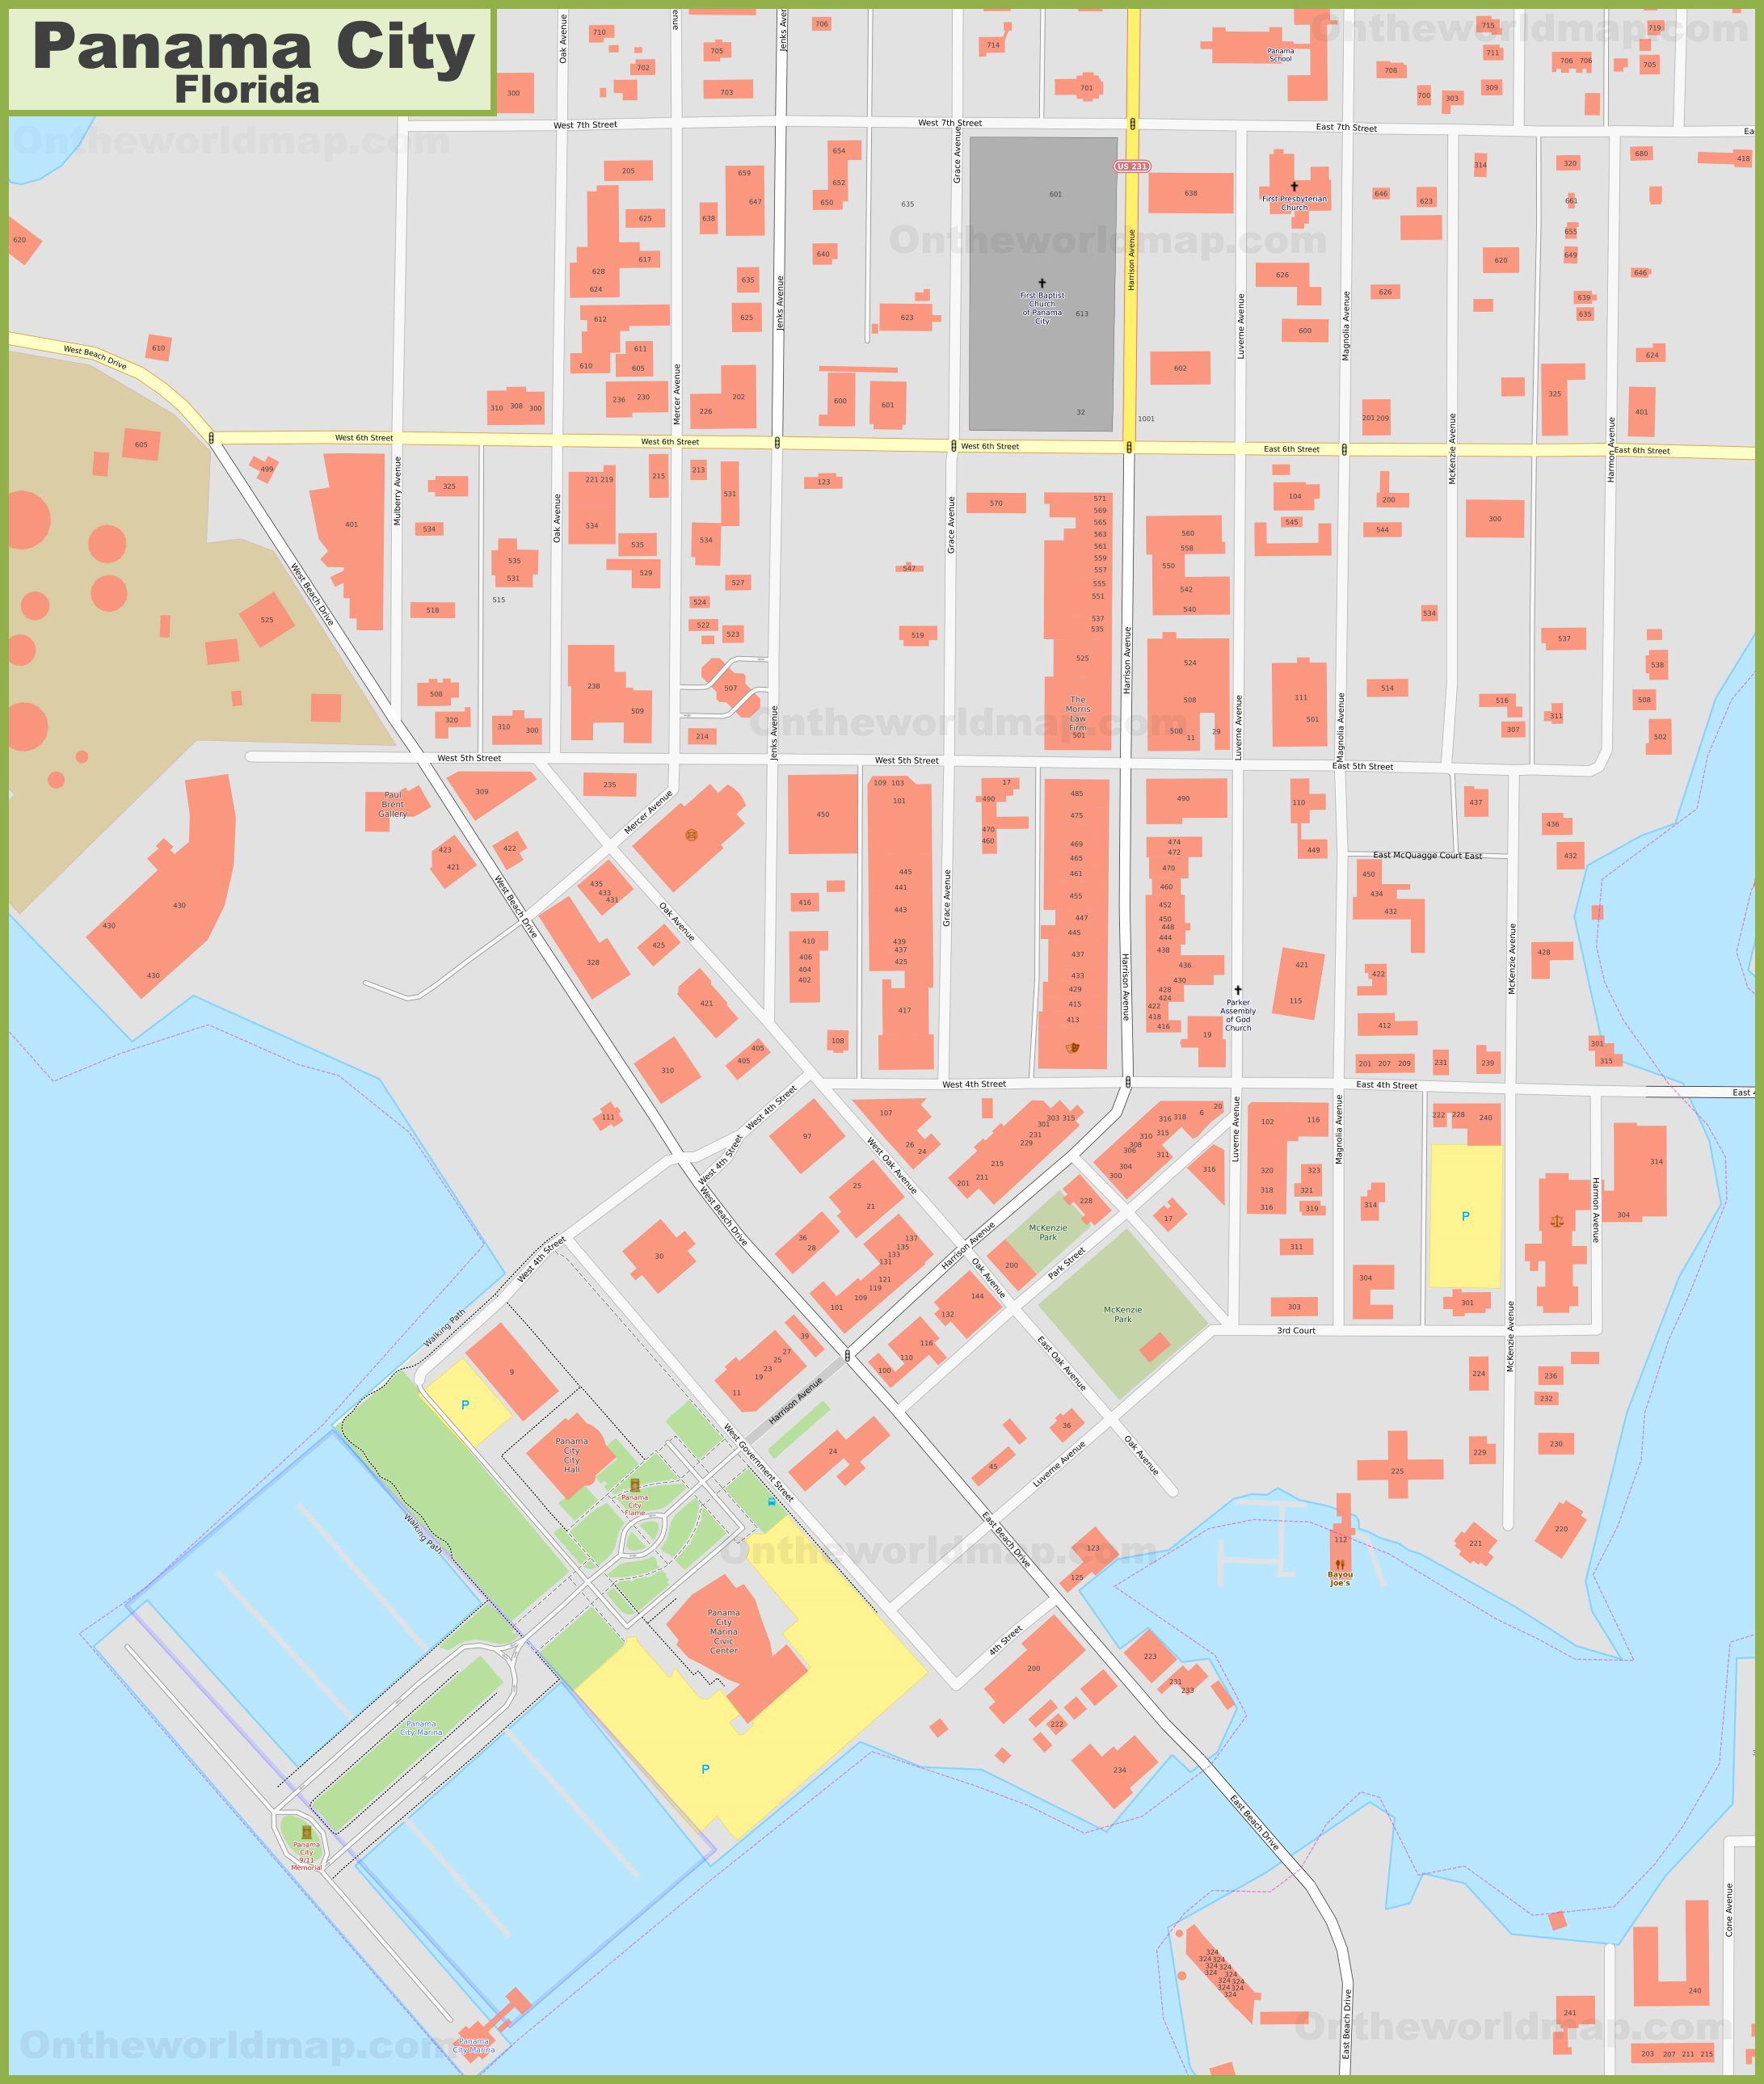 Panama City downtown map (Florida)